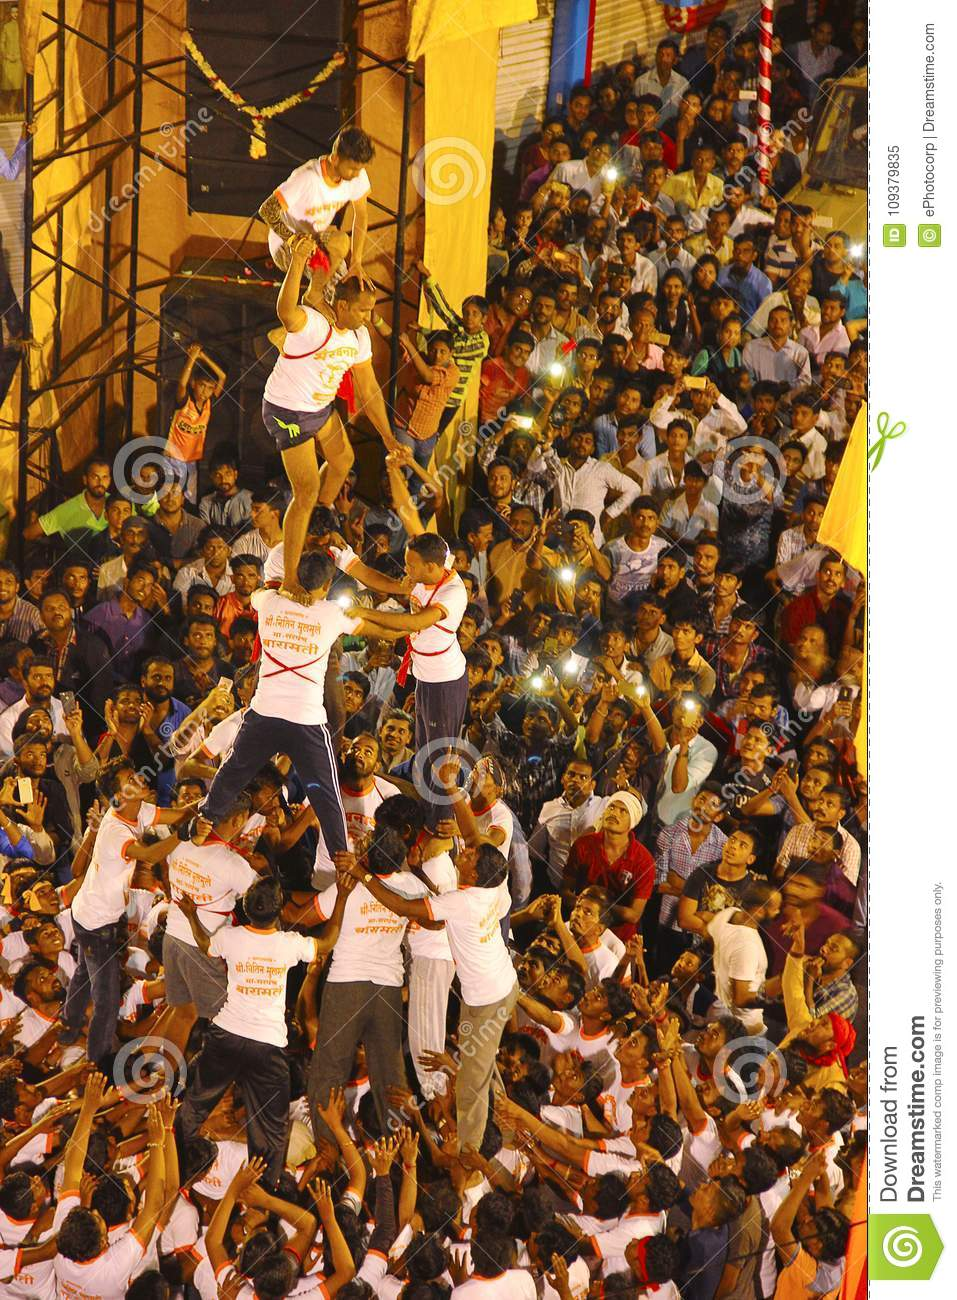 Govindas, Young Boys Surrounded By Crowd, Making Human Pyramid To